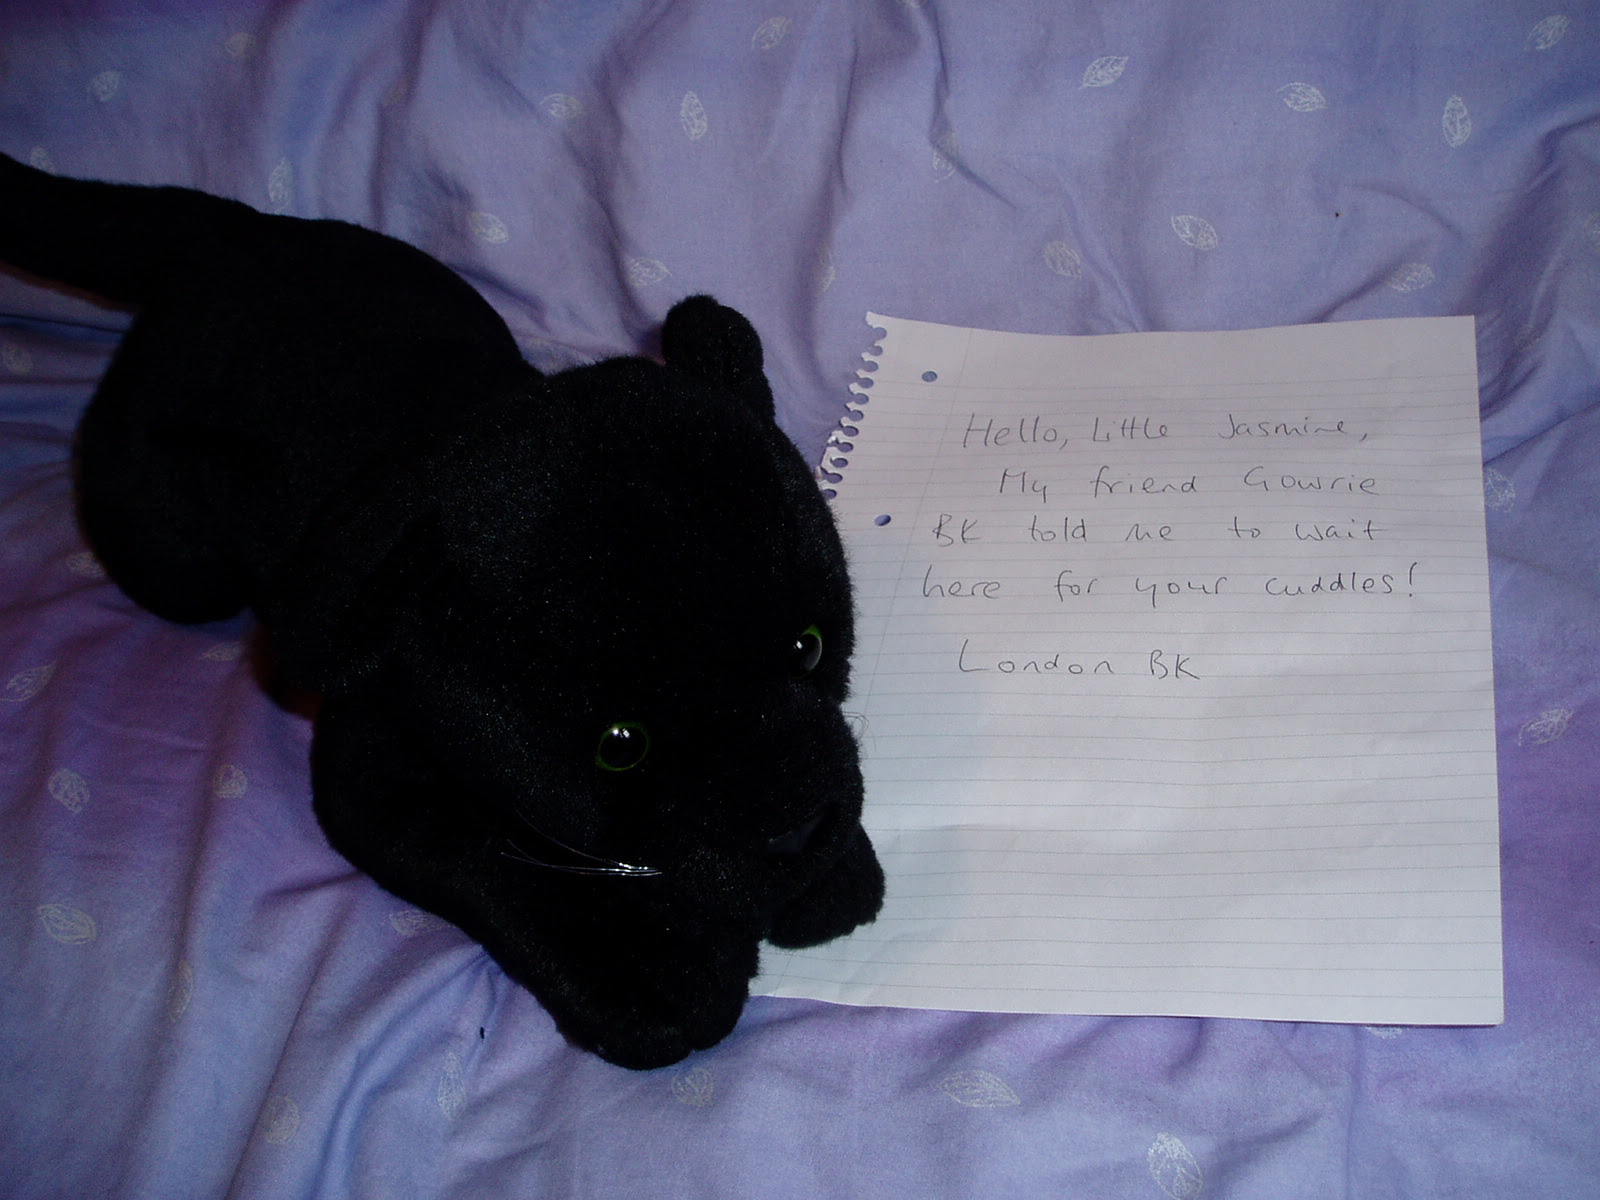 London BK with note for Jasmine: Hello Little Jasmine. My friend Gowrie BK told me to wait here for your cuddles. London BK.